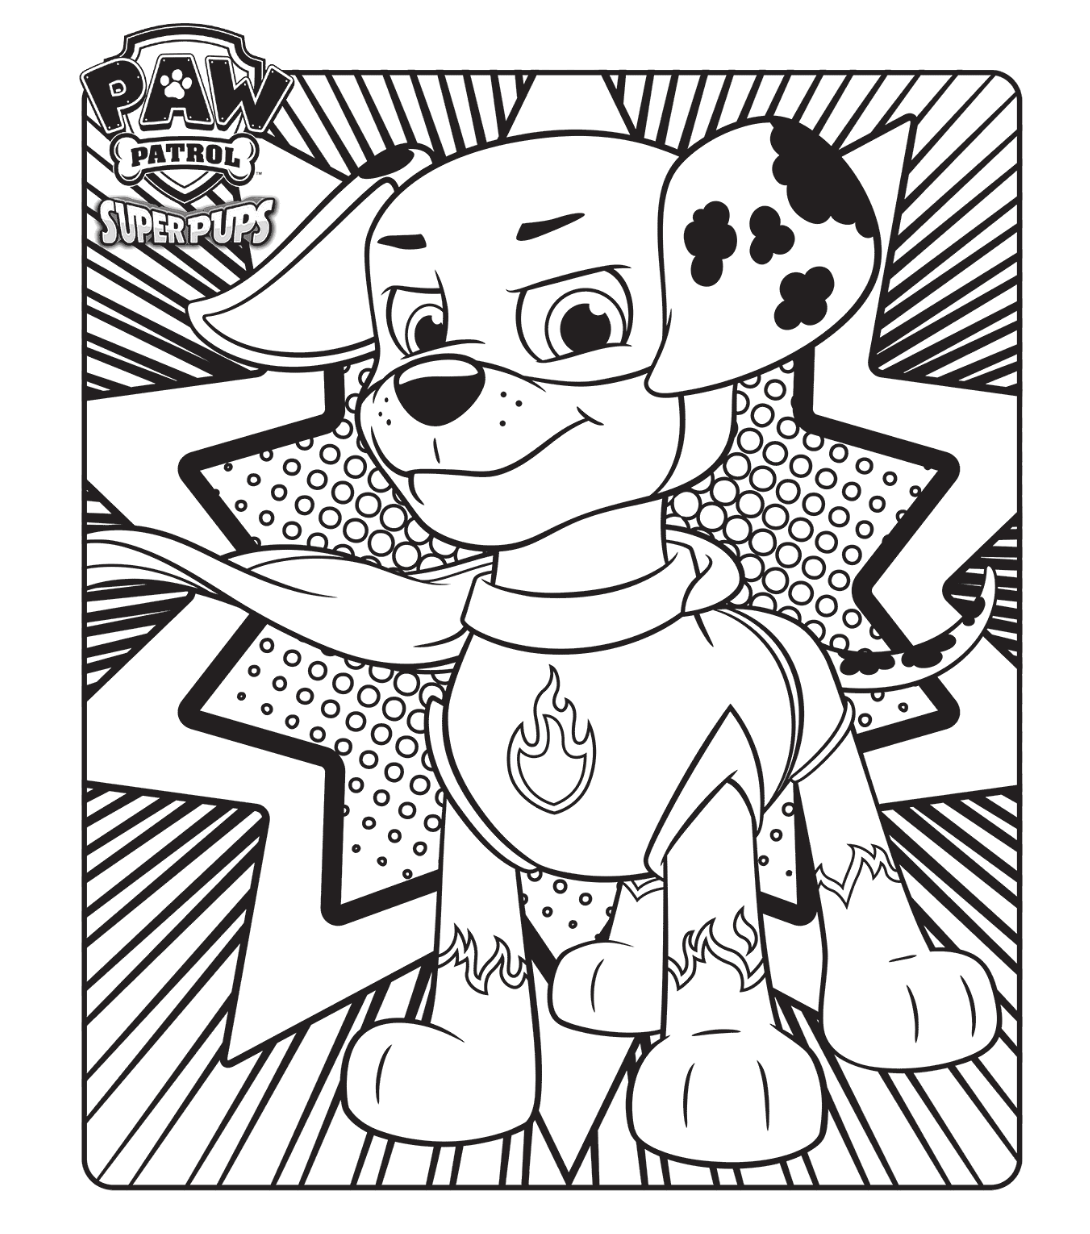 PAW Patrol Super Pups Colouring